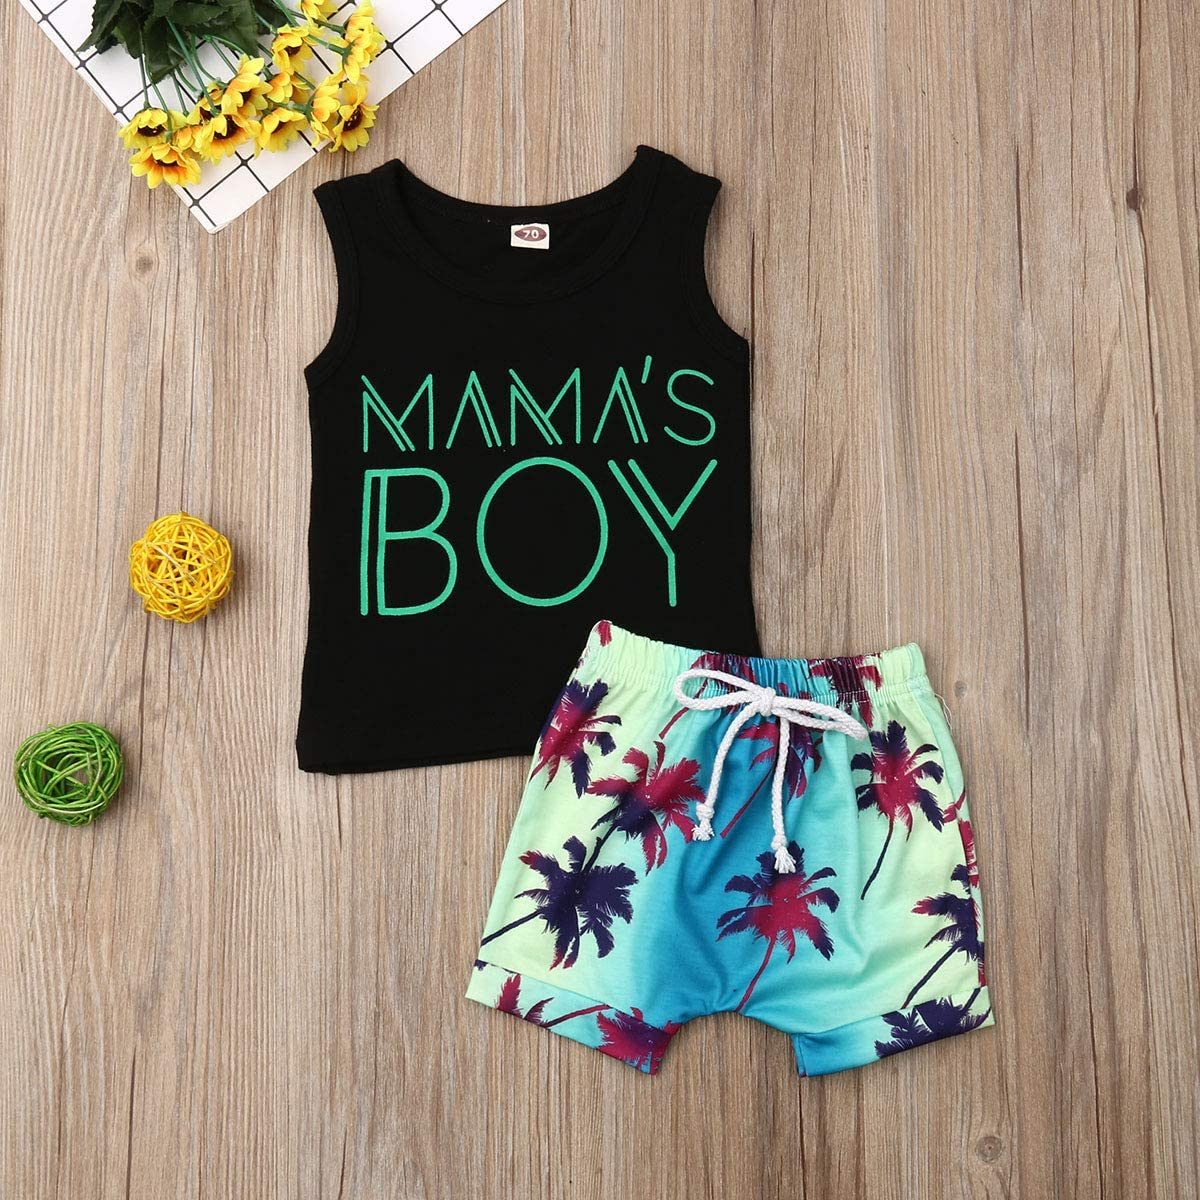 Newborn Baby Toddler Boy Shorts Outfits Mamas Boy Sleeveless Tee Top+Coconut Leaf Print Short 2Pcs Summer Clothes Sets